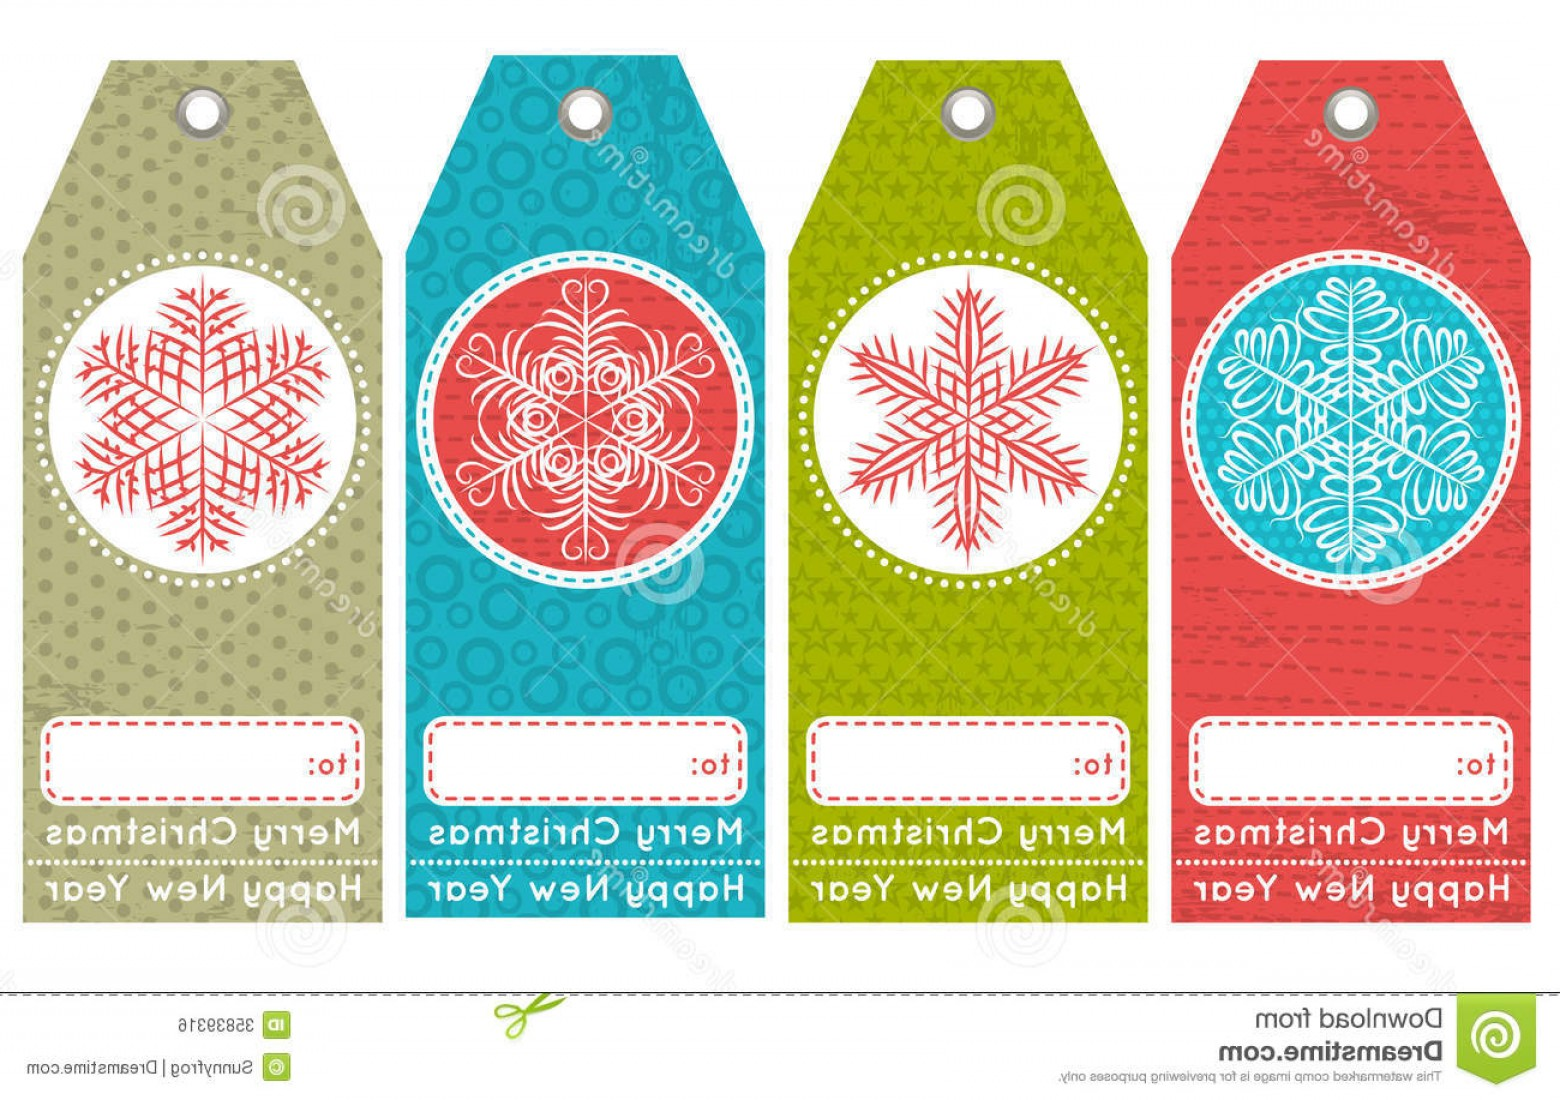 Vintage Xmas Sale Tag Vector: Royalty Free Stock Image Vintage Christmas Labels Sale Offer Vector Illustration Image